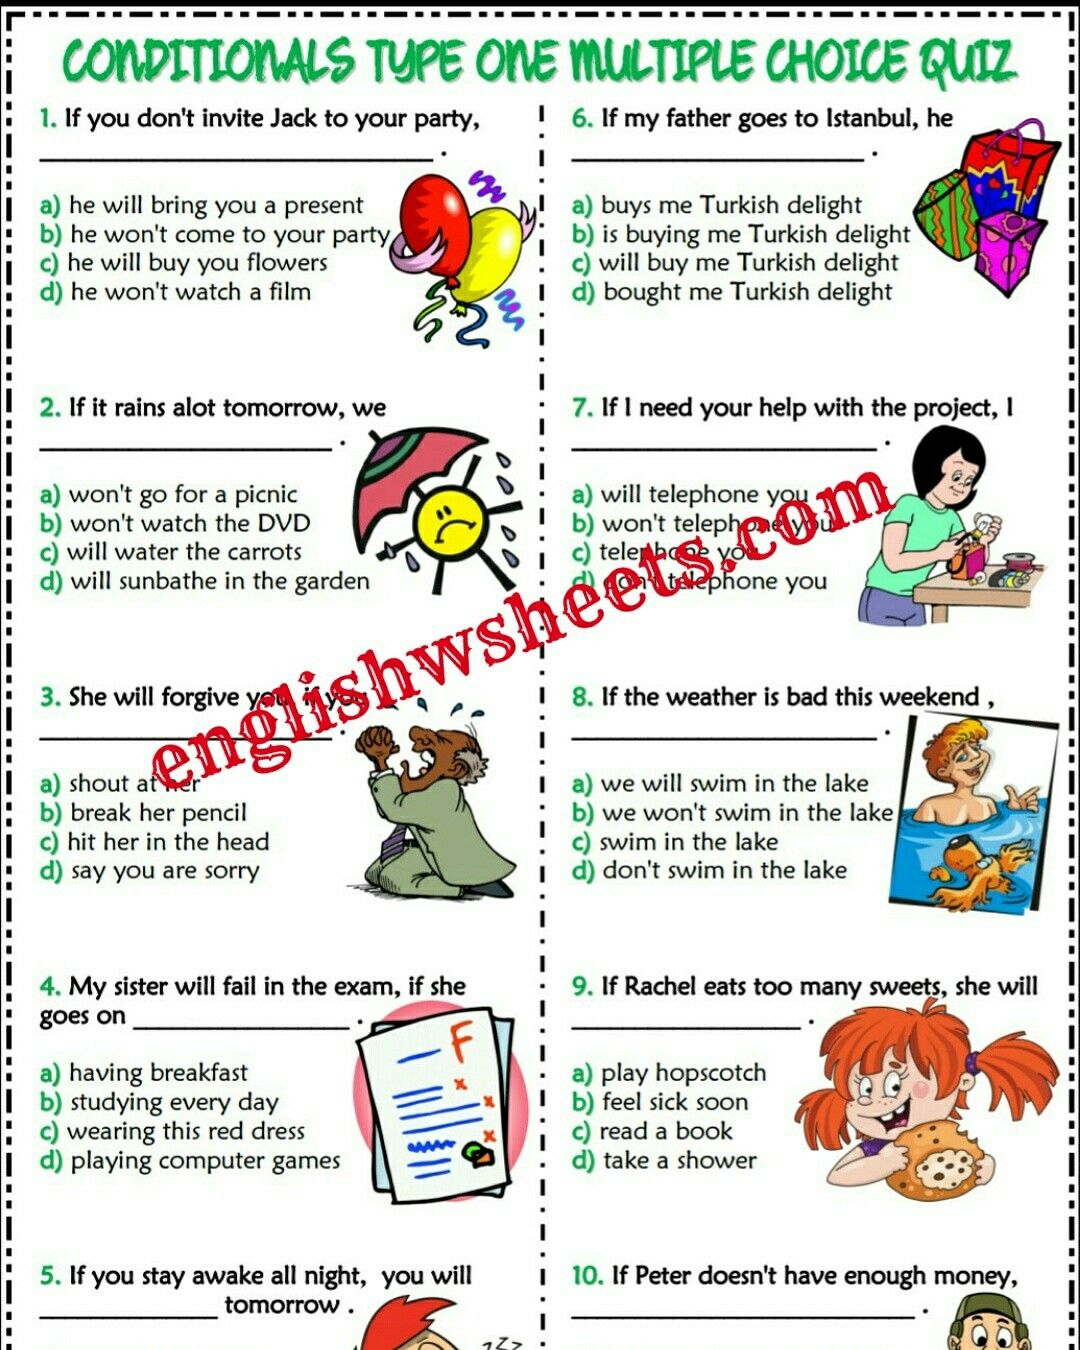 Conditionals Esl Printable Worksheets And Exercises